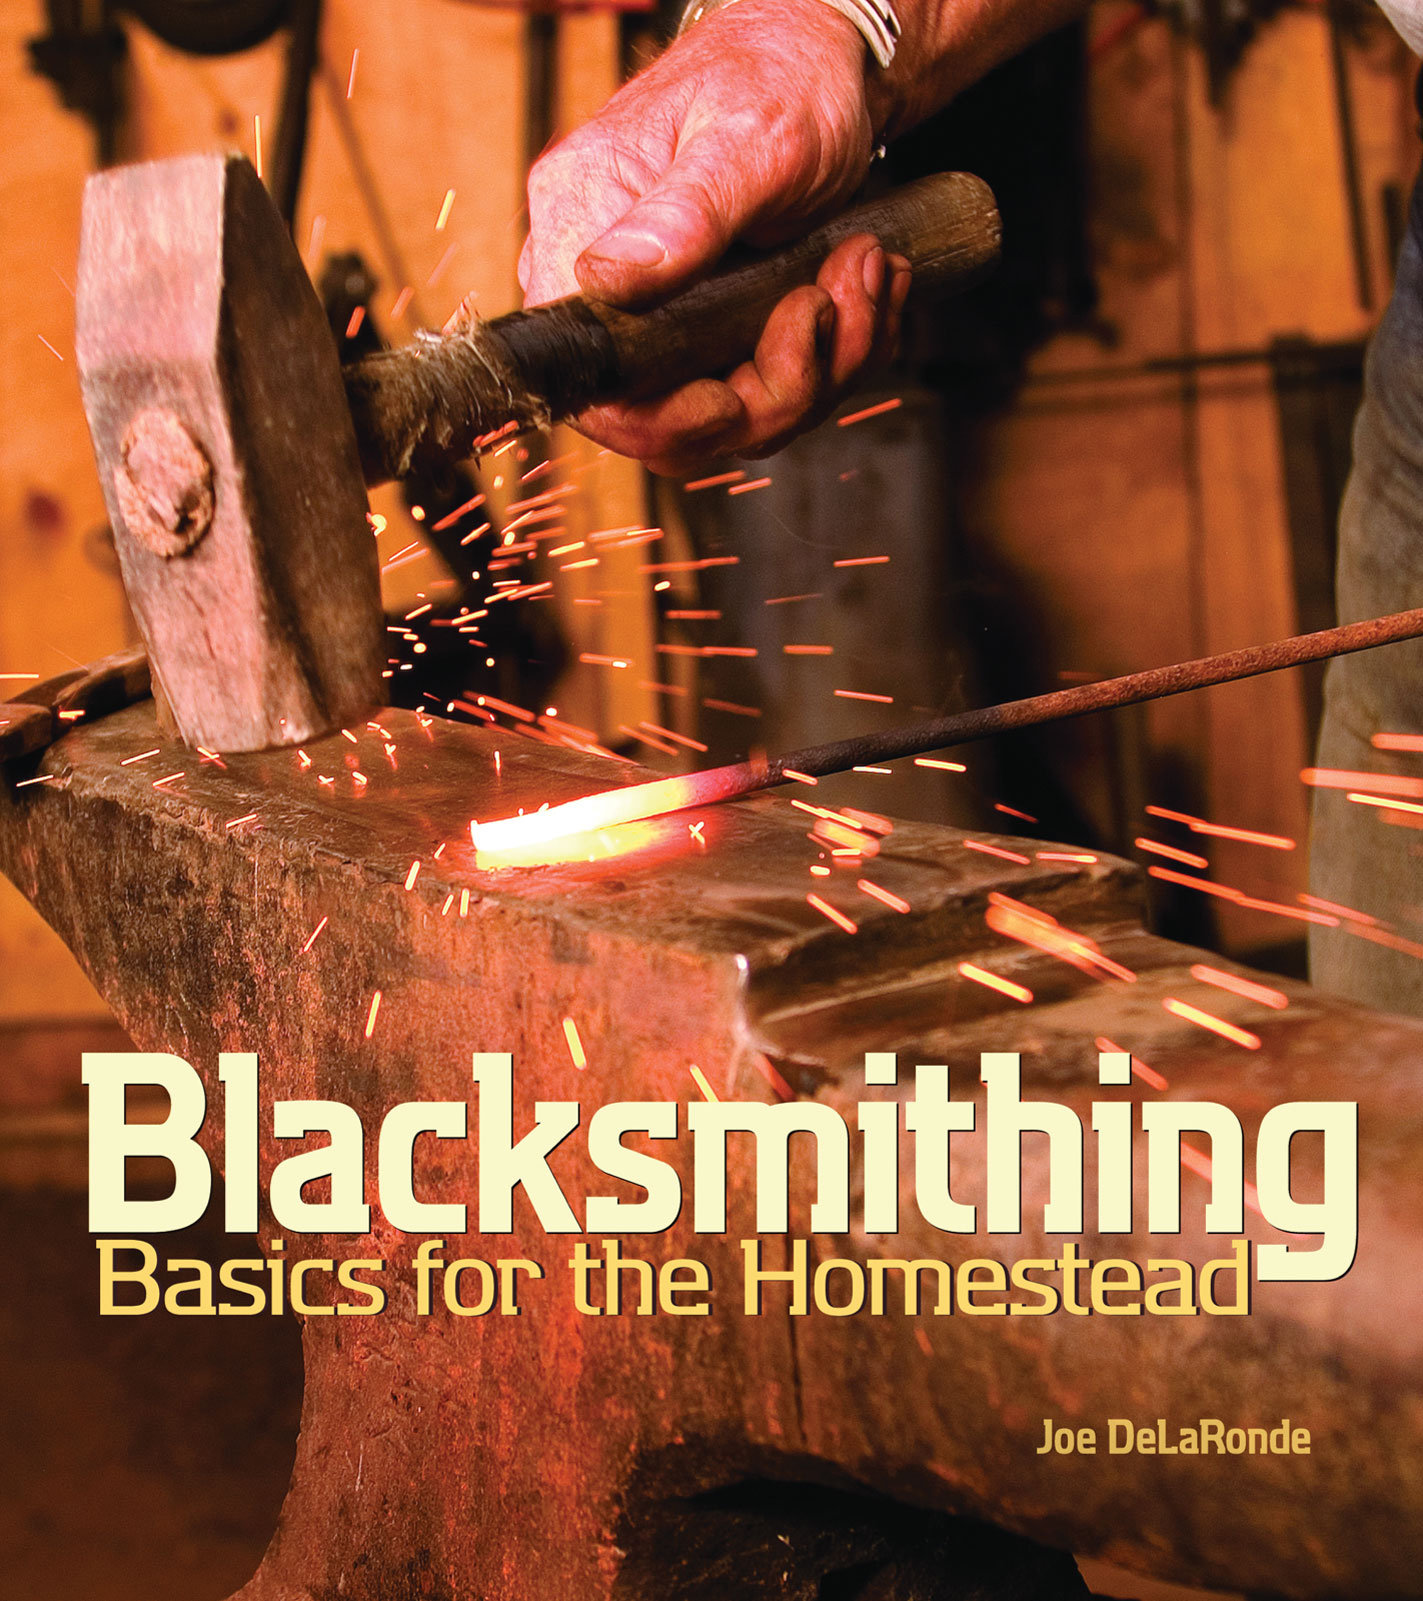 Blacksmithing Basics for the Homestead